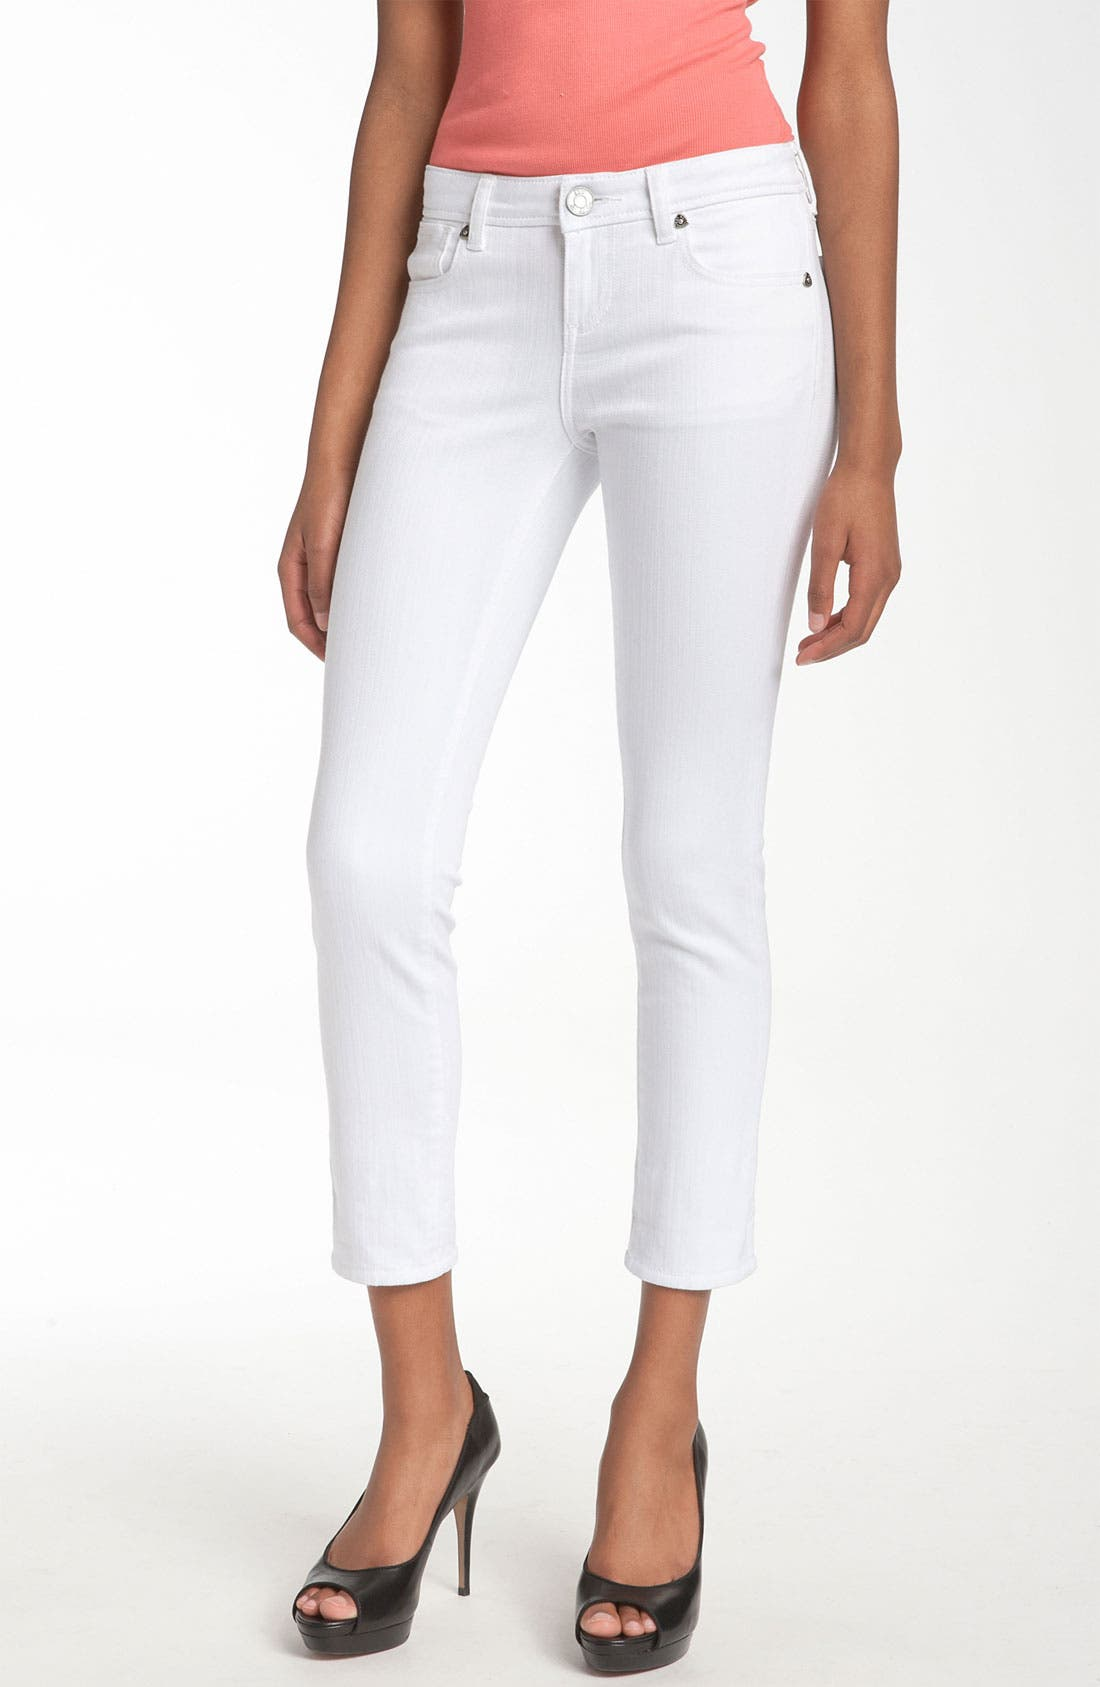 Alternate Image 3  - KUT from the Kloth 'Catherine' Slim Boyfriend Jeans (White Wash)